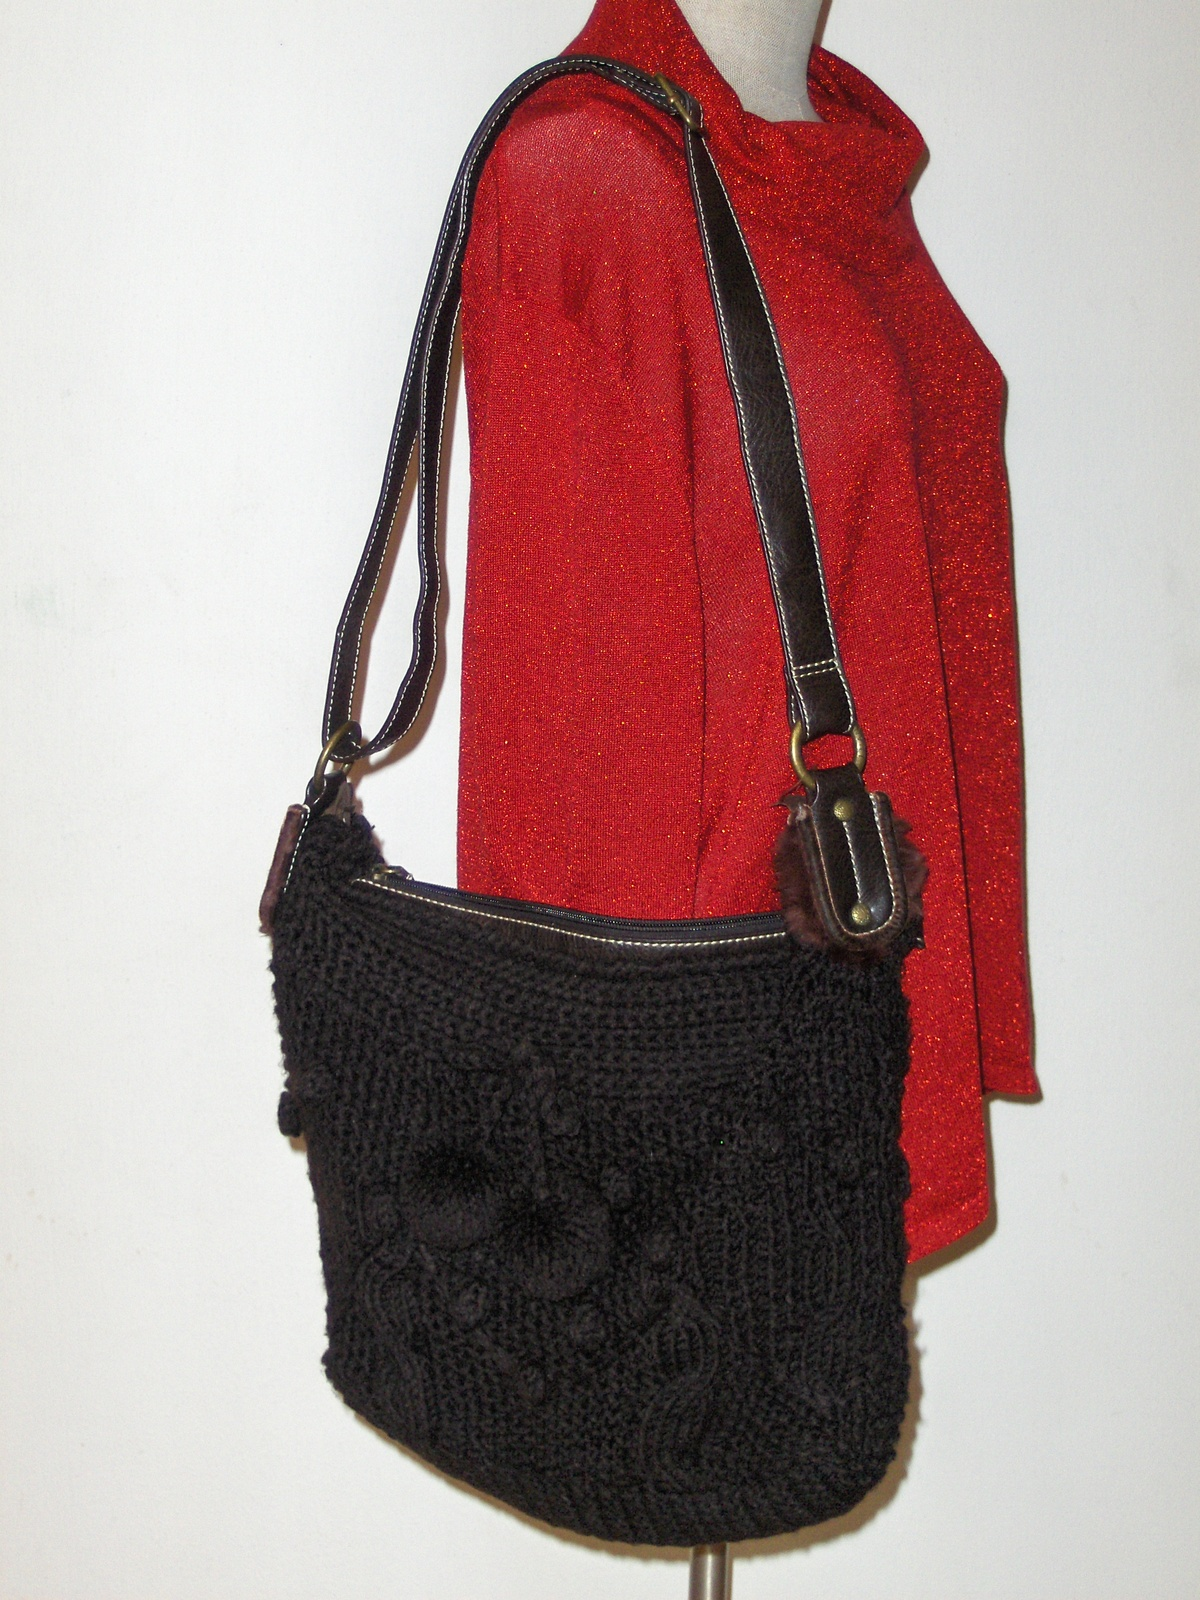 Crochet Shoulder Bag : Luana Sweater Hobo Bag Crochet Shoulder Bag - Handbags & Purses